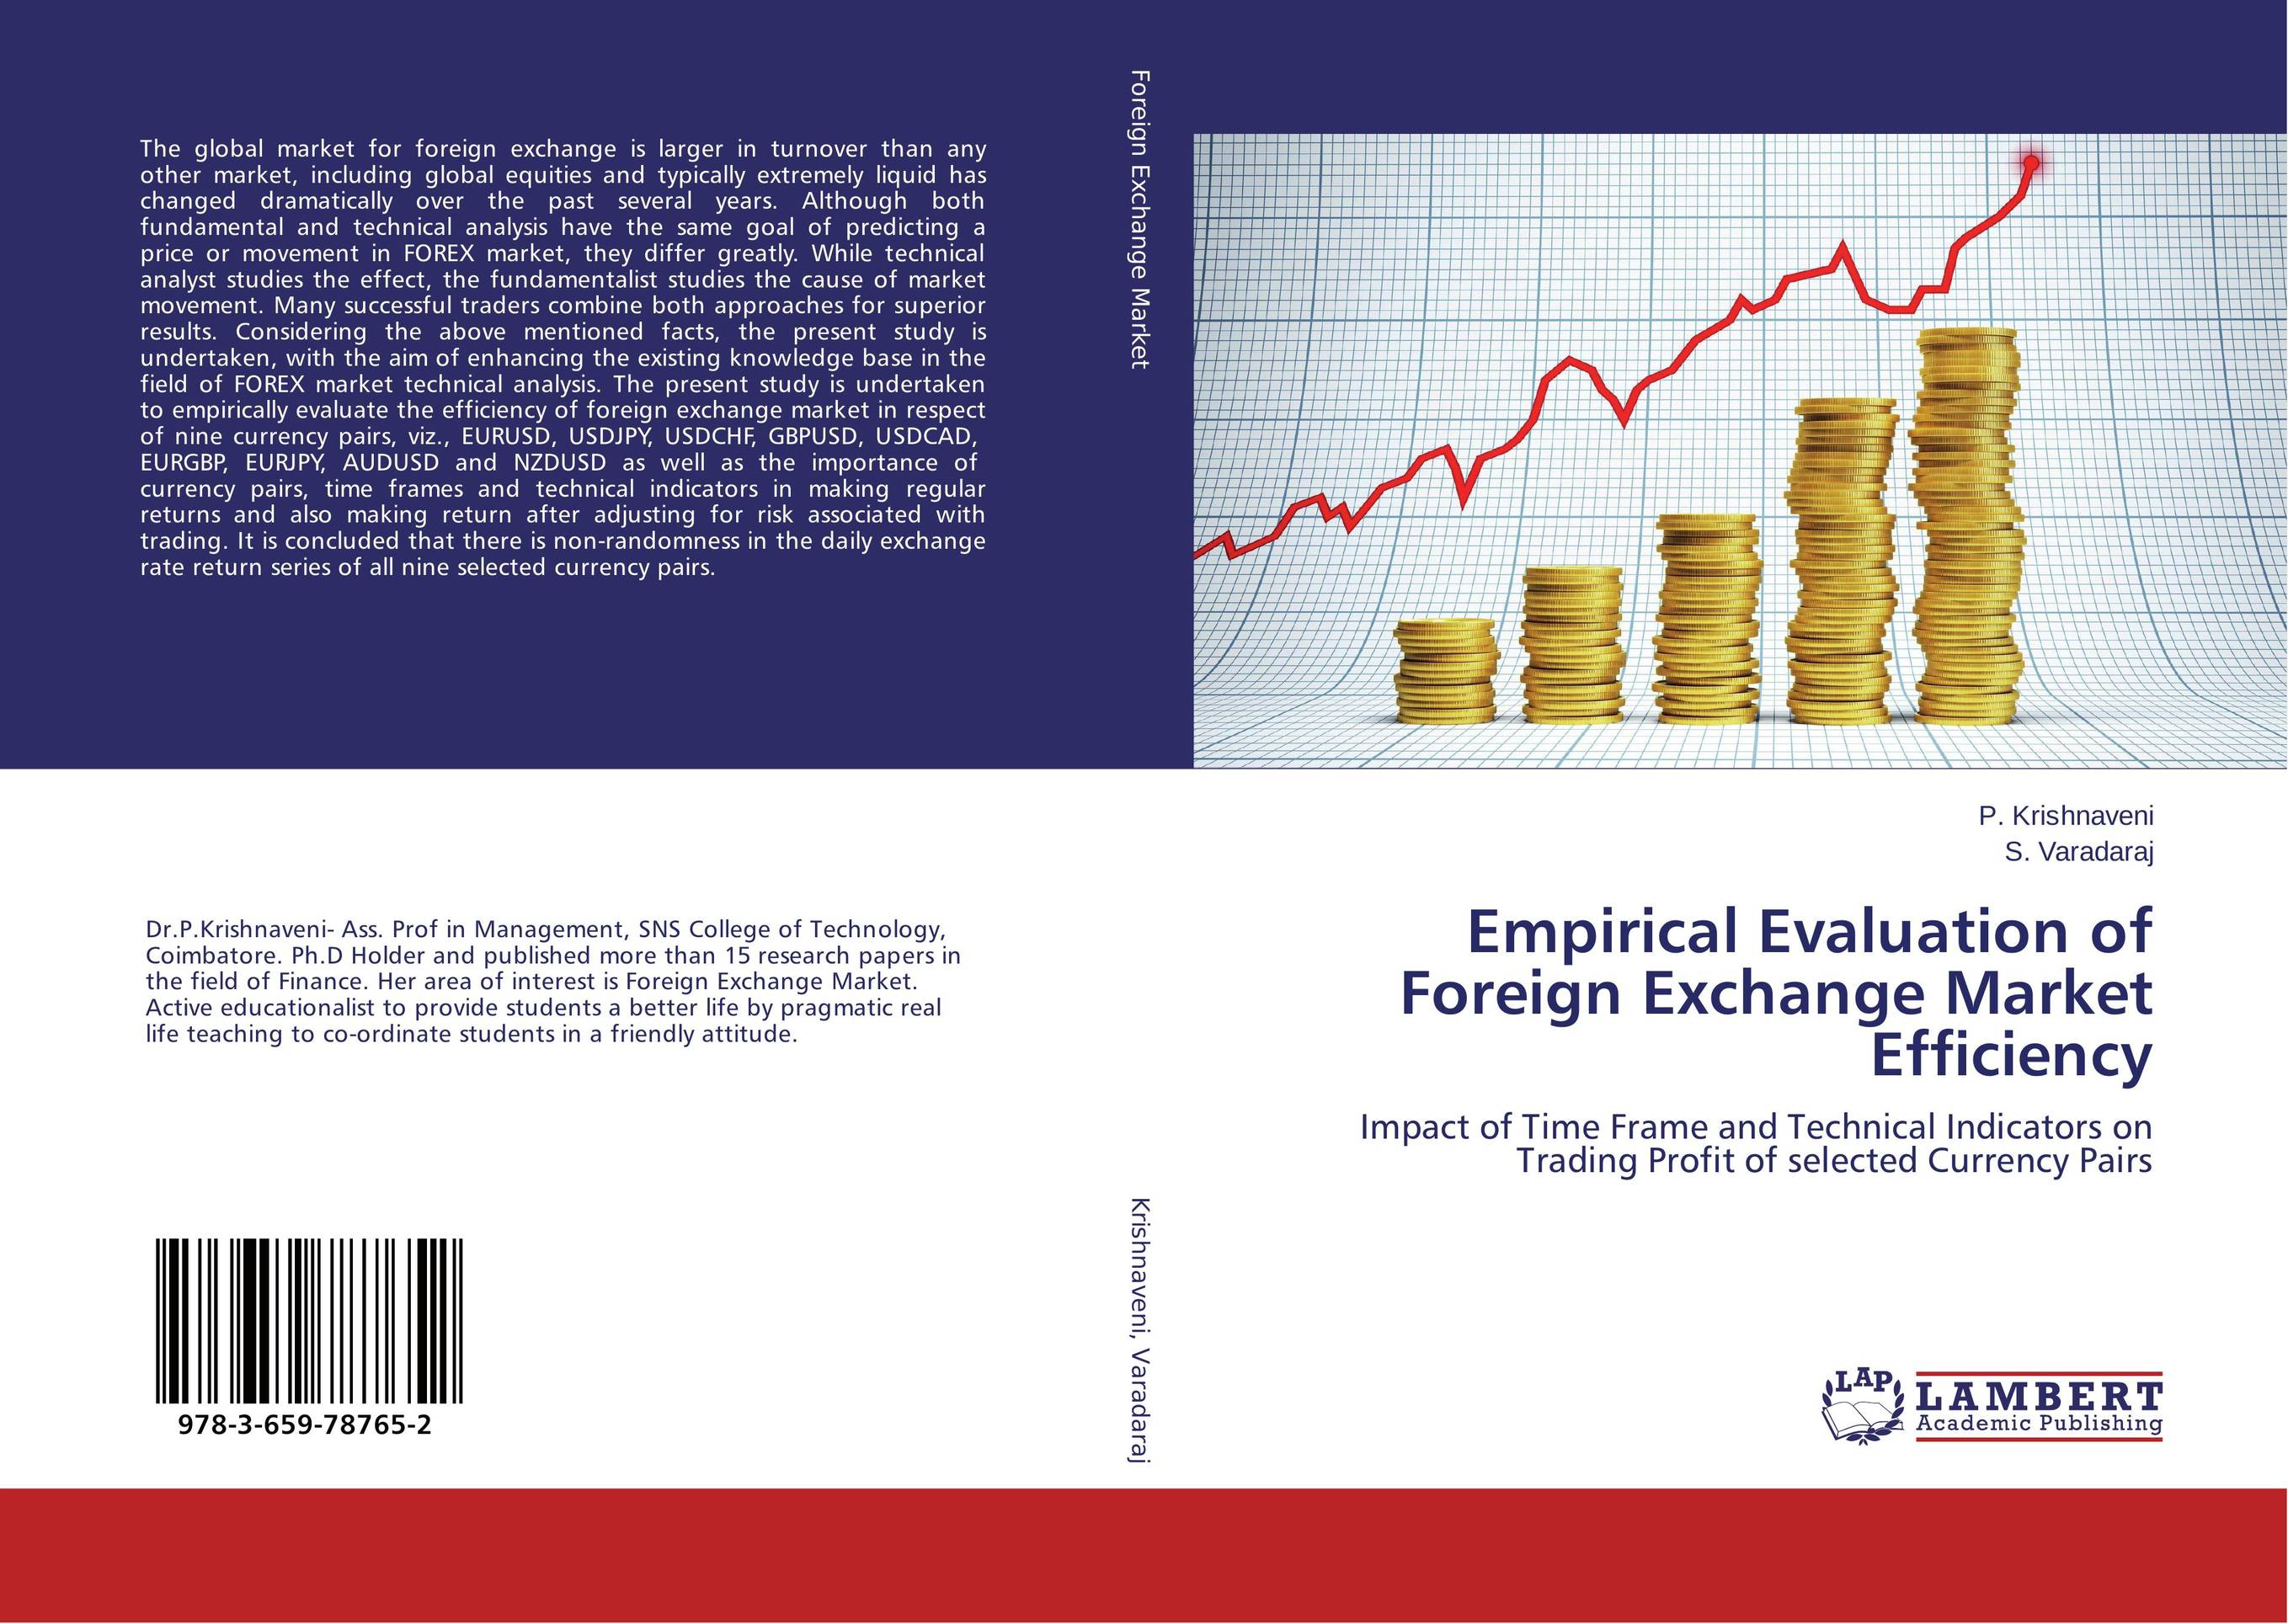 Empirical Evaluation of Foreign Exchange Market Efficiency empirical evaluation of operational efficiency of major ports in india